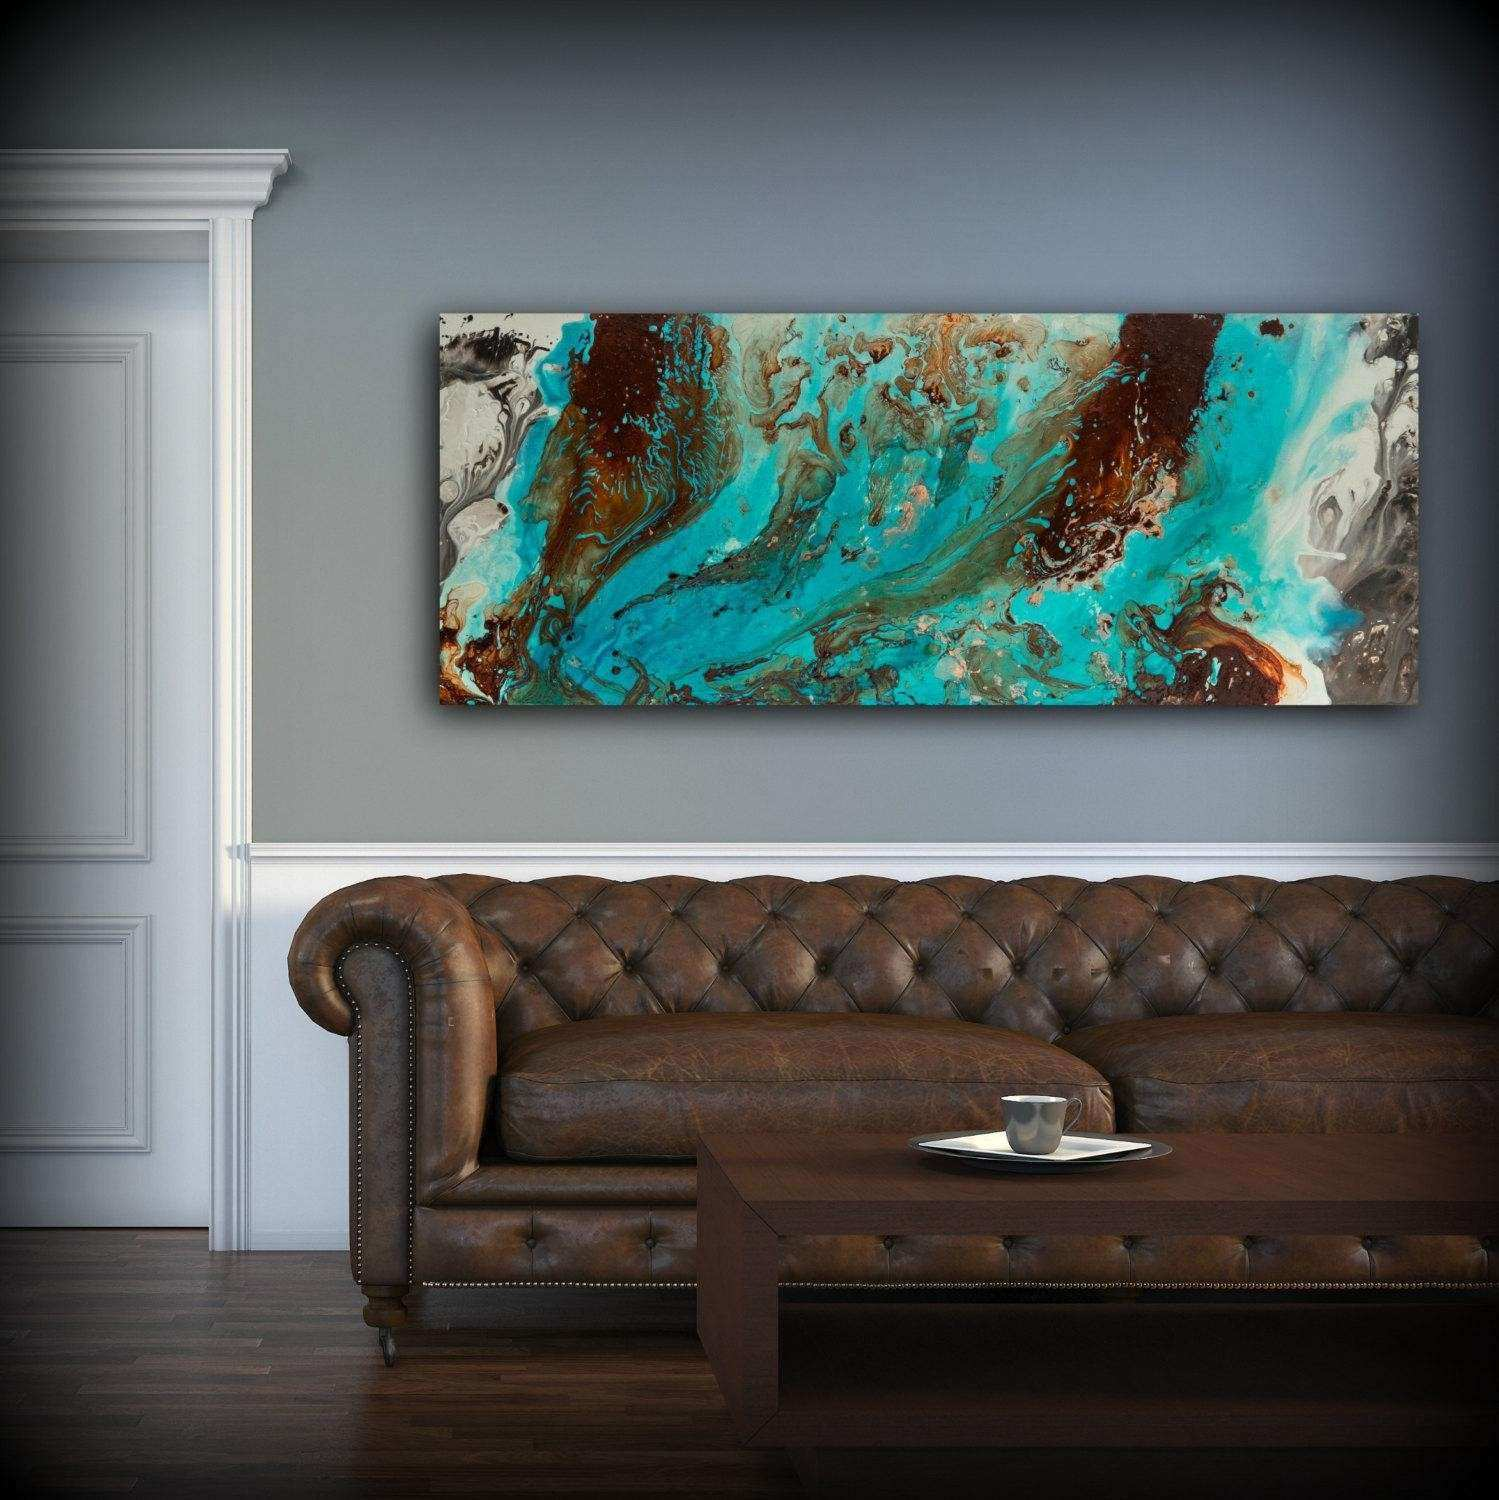 20 Top Brown and Turquoise Wall Art